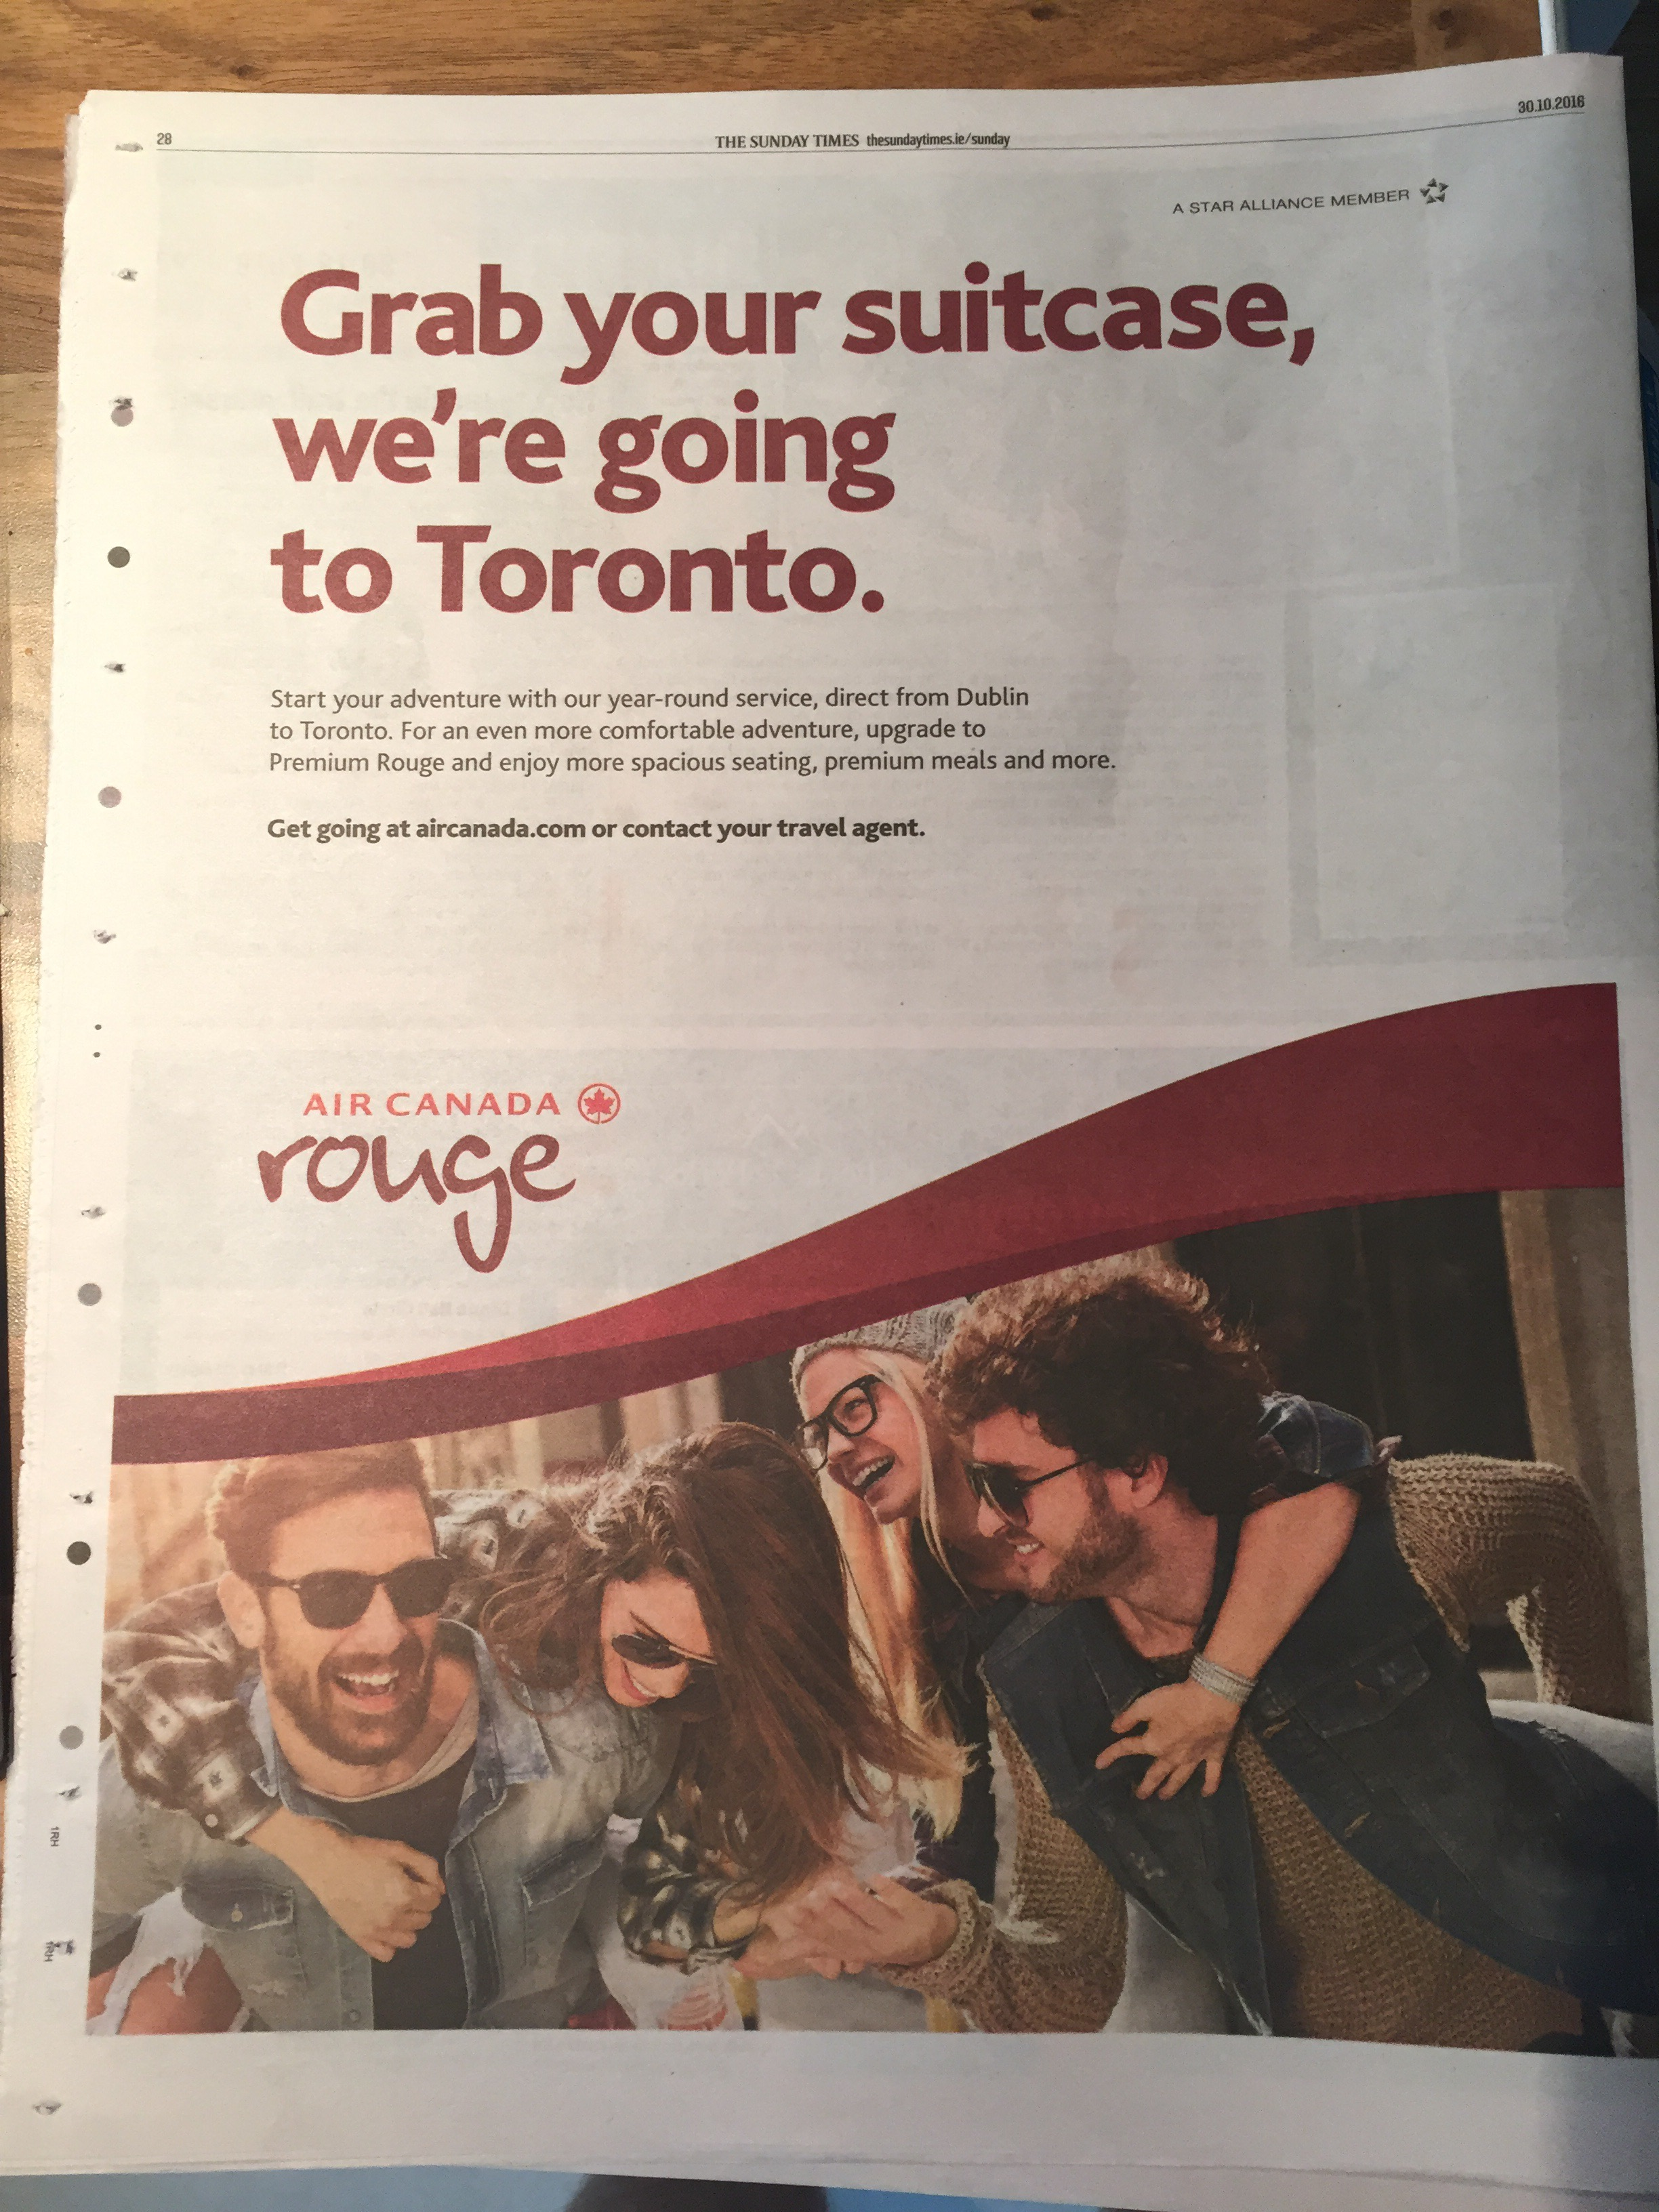 Air Canada rouge – grab your suitcase we're going to Toronto